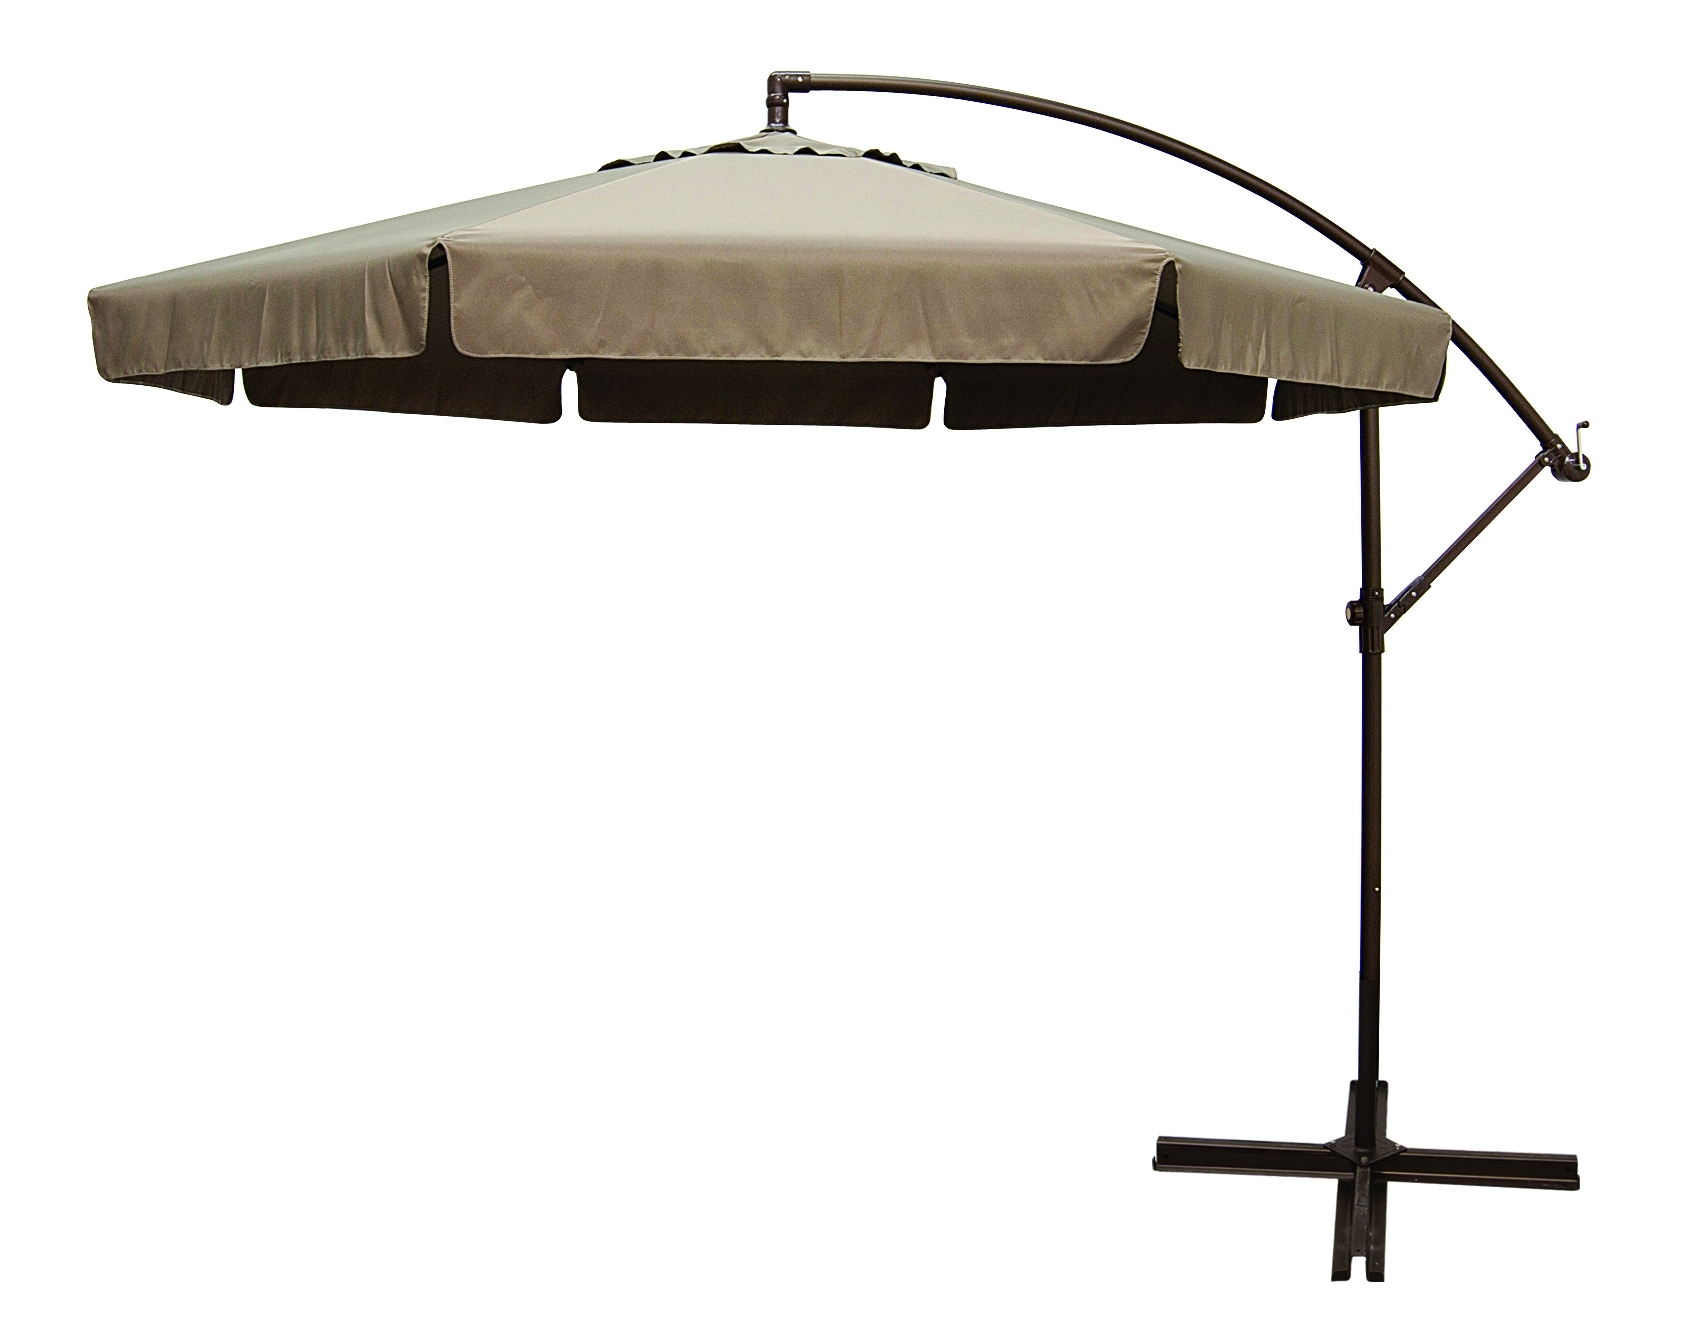 Preferred Large Patio Umbrellas Pertaining To Large Patio Umbrellas Furniture — Wilson Home Ideas : Stylish Large (View 13 of 20)